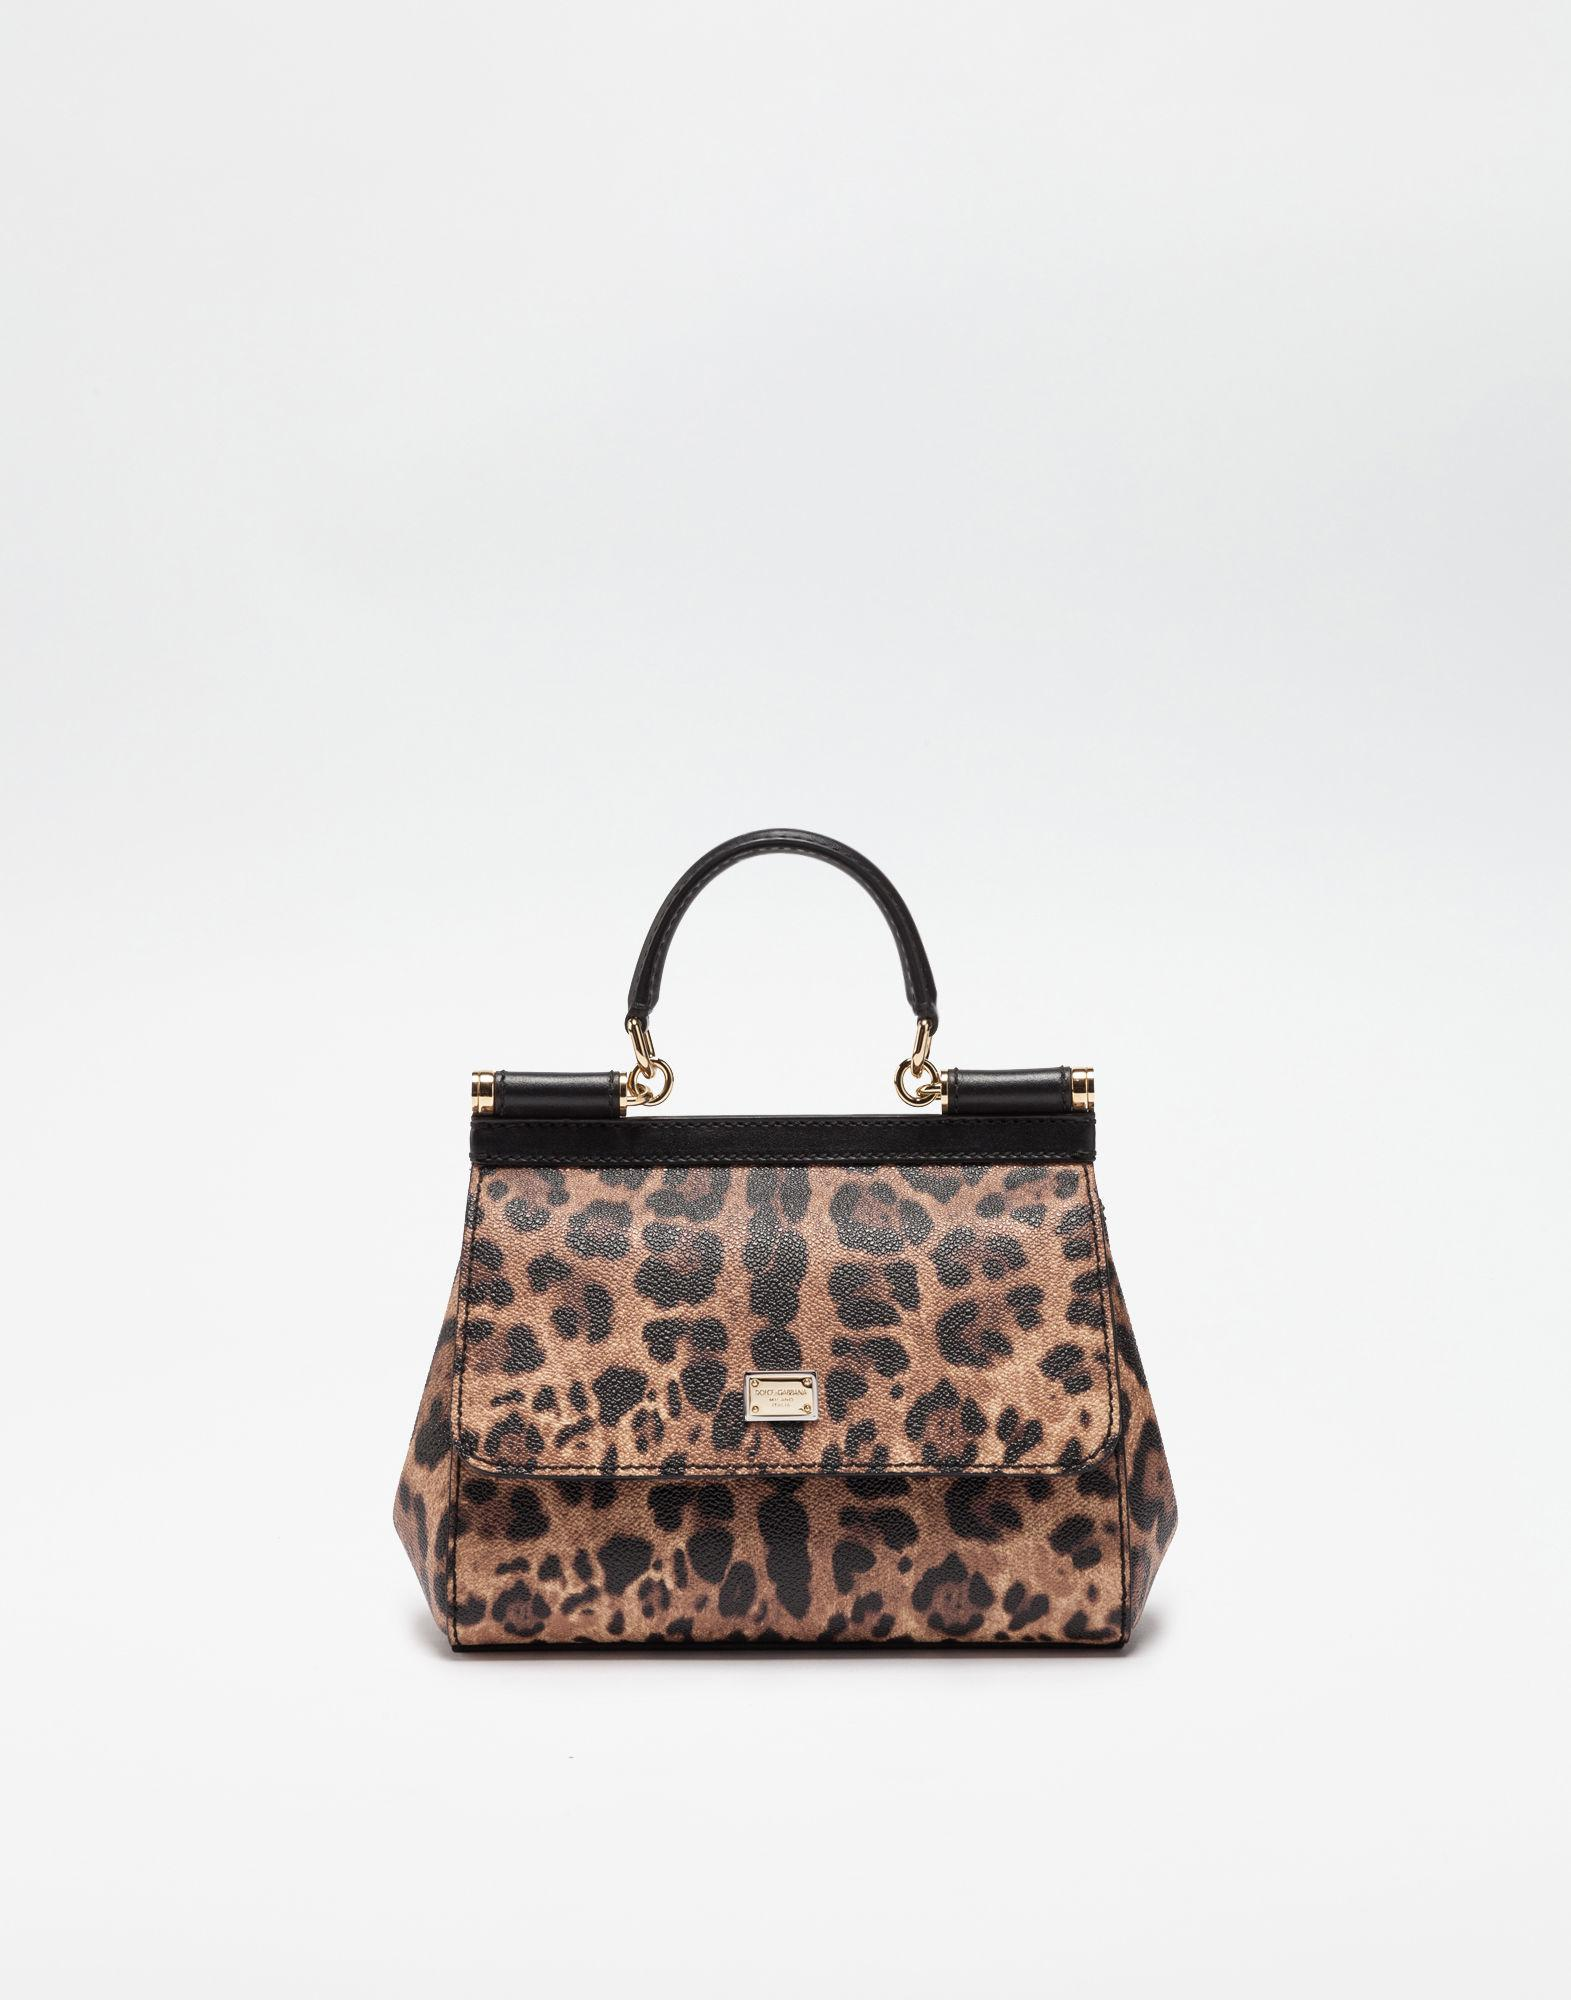 Lyst - Dolce   Gabbana Small Sicily Bag In Leopard Textured Leather 81a6ef9083